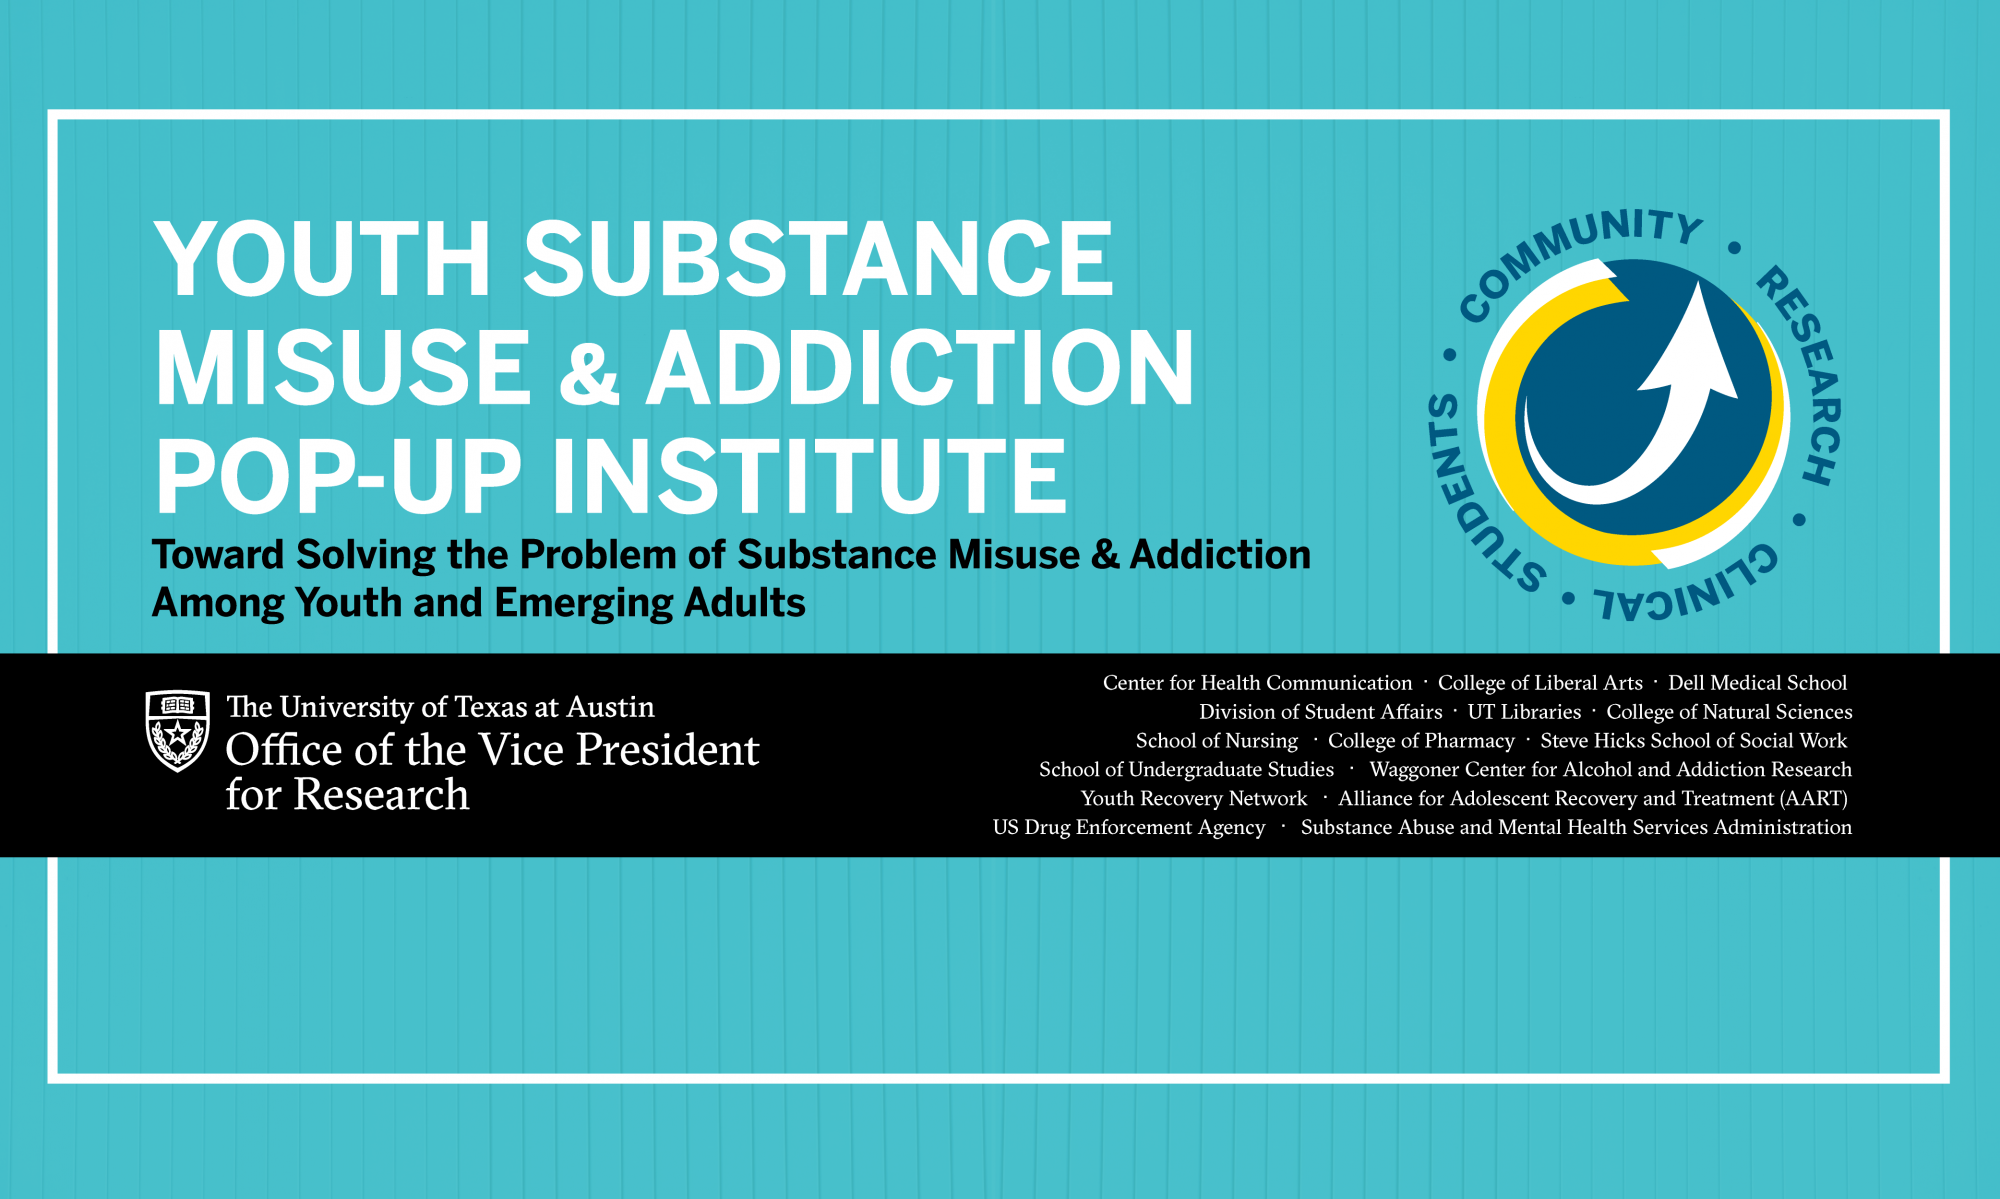 Youth Substance Misuse and Addiction Pop-Up Institute